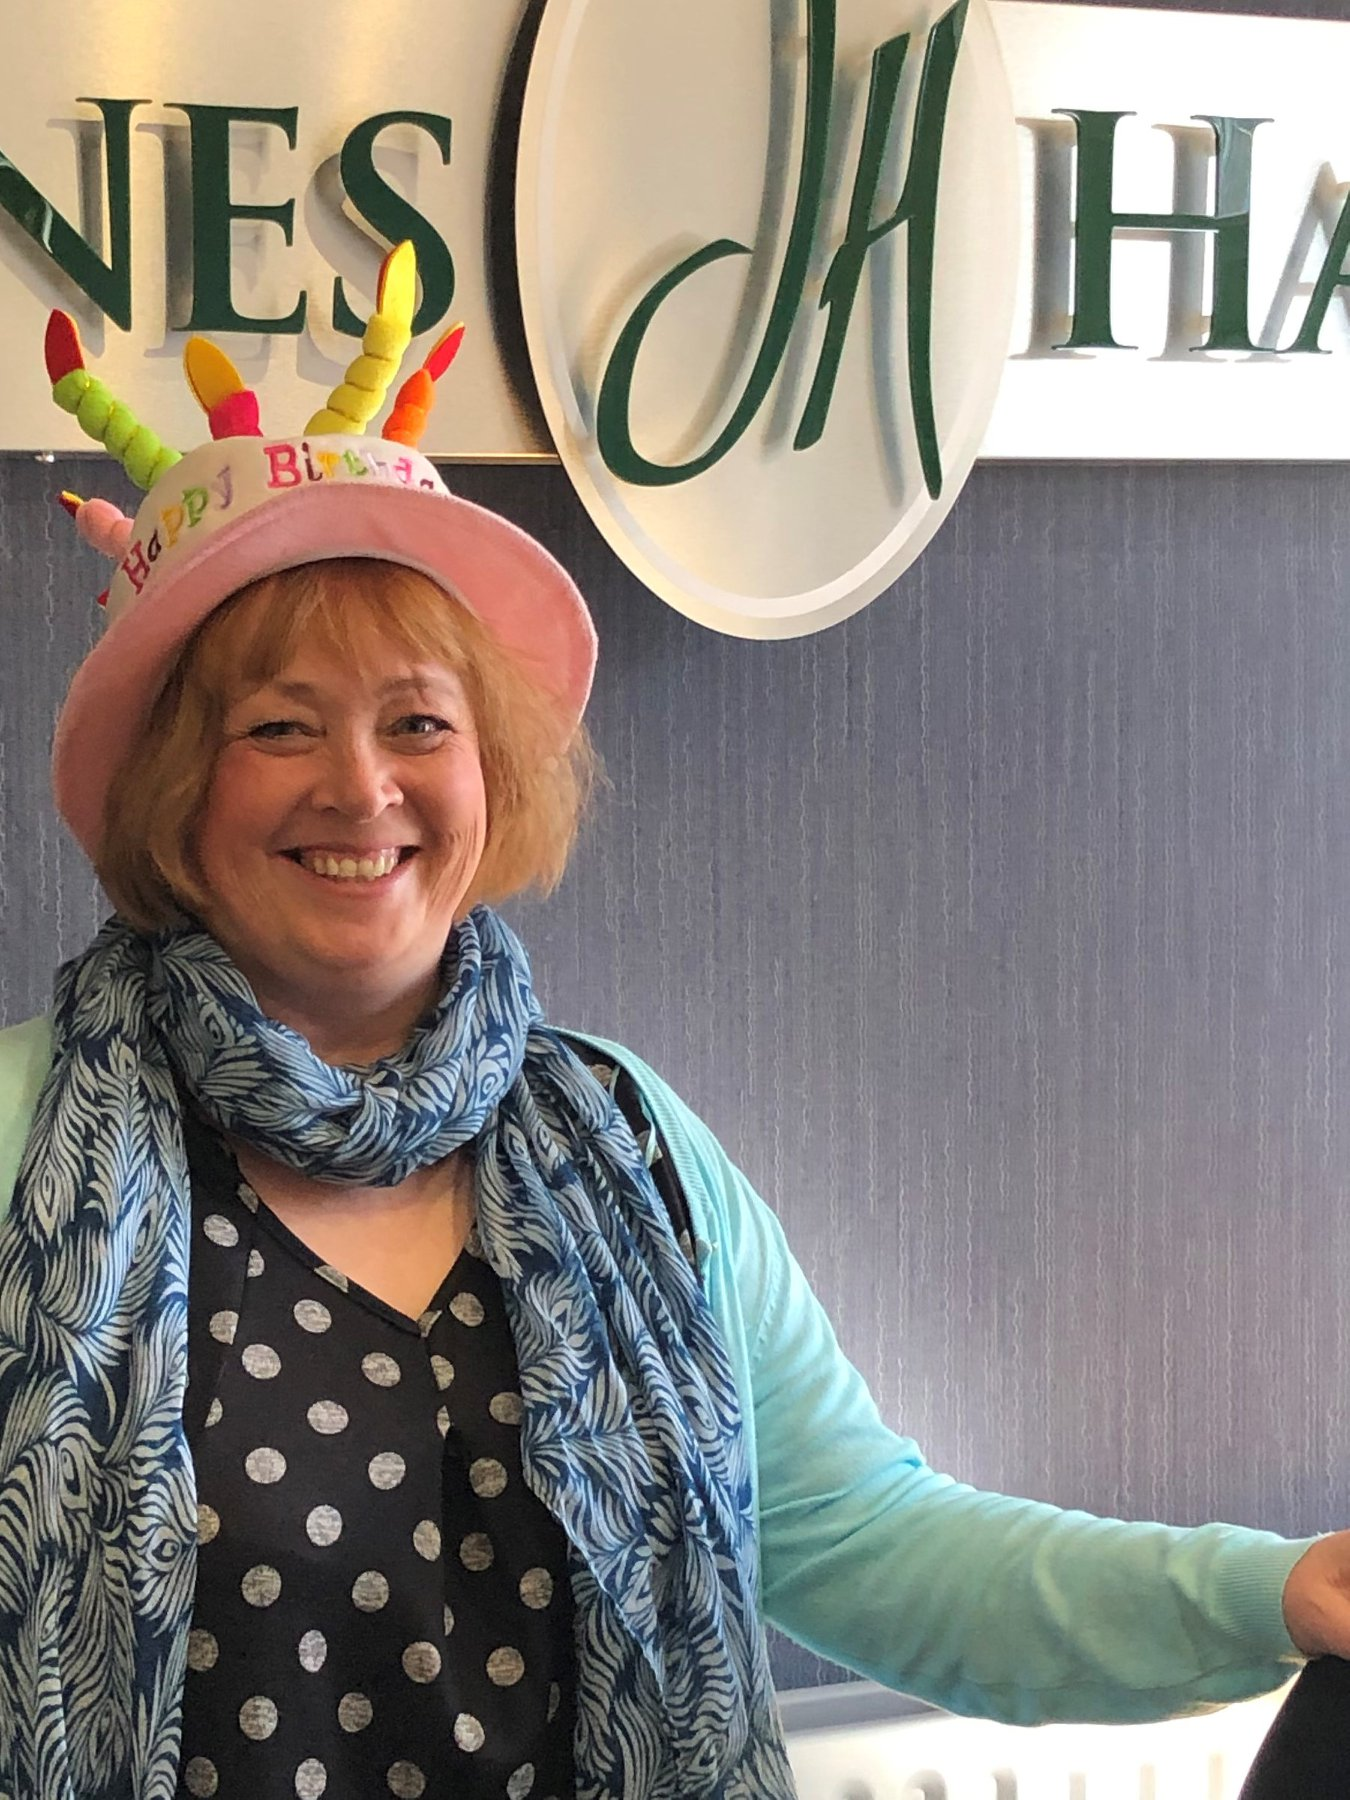 Cath Wigley, celebrating April Birthdays